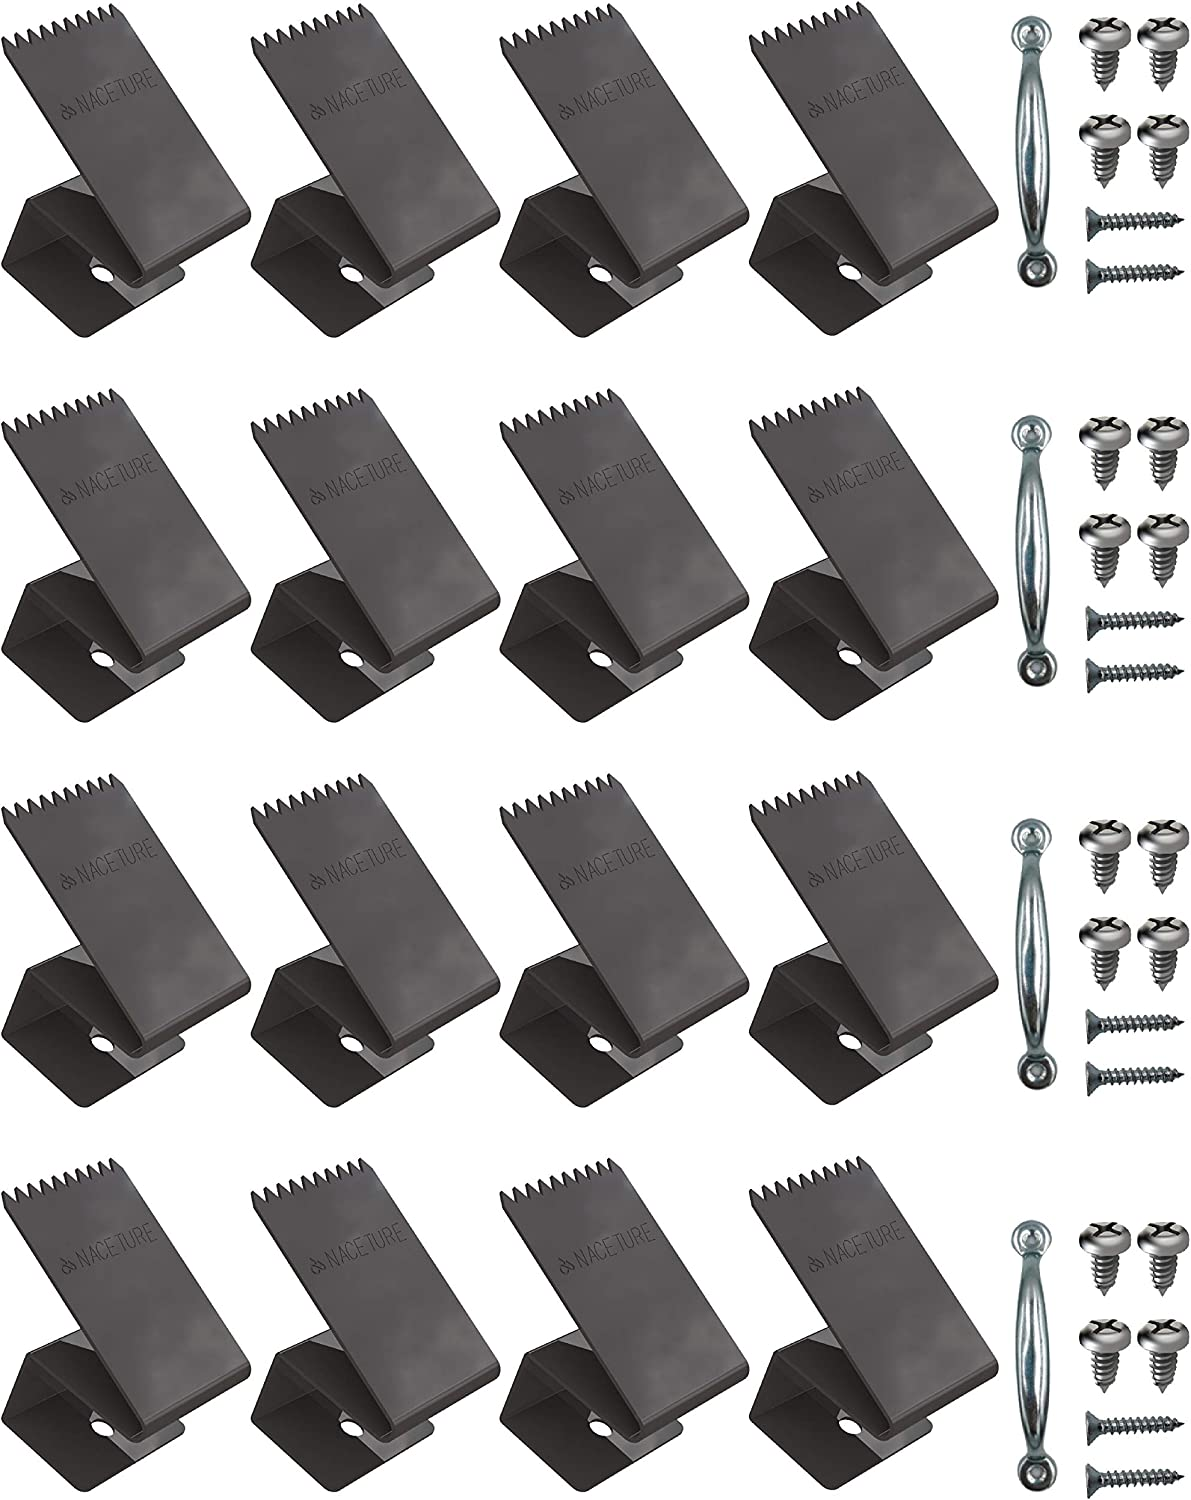 NACETURE Hurricane Long-awaited Window Clips Stainless Re Same day shipping Steel Universal and